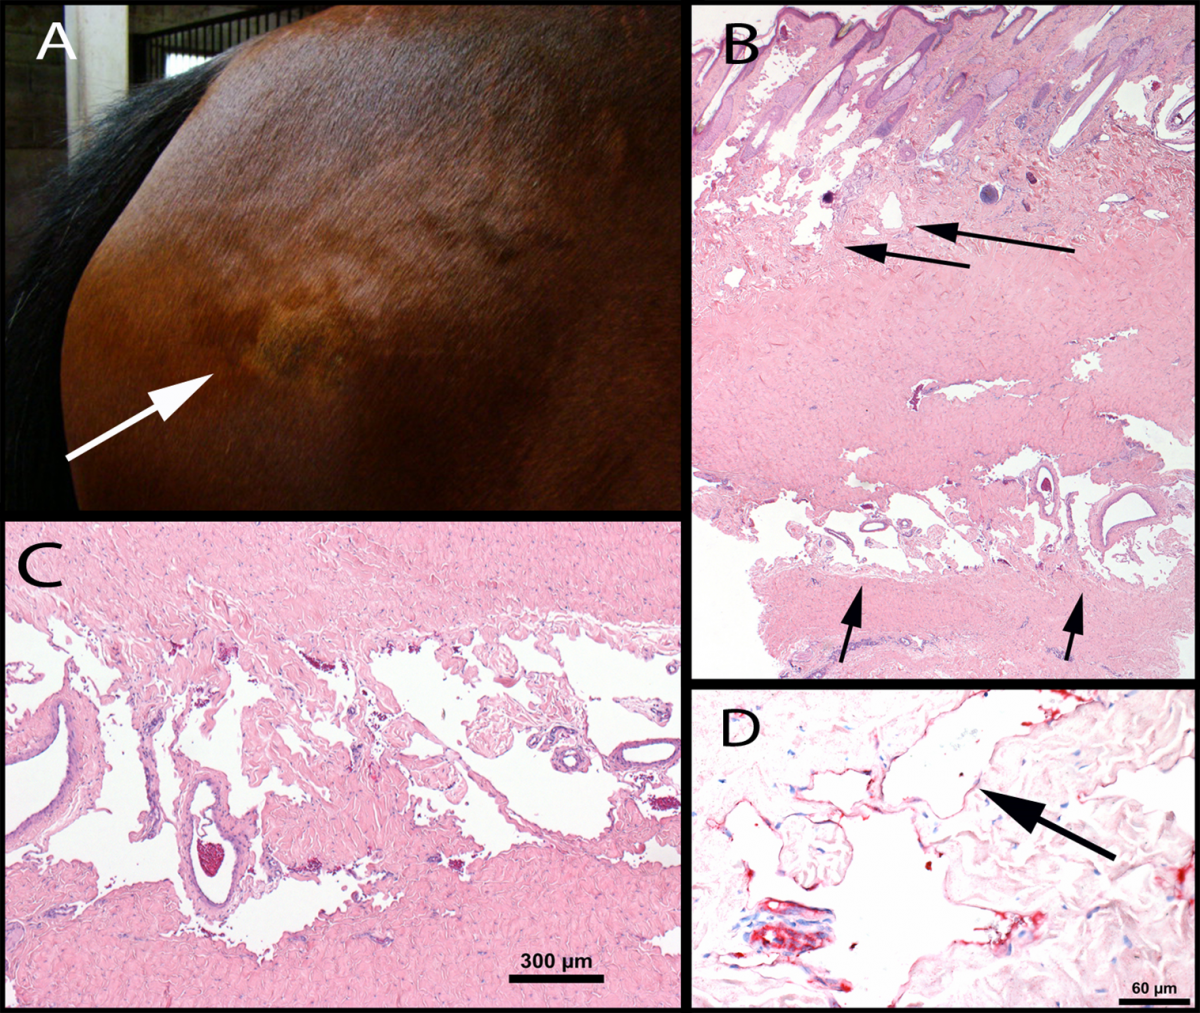 A. Gross photograph of the lesion – lumpy area on the hip region (arrow). B. Full-thickness biopsy showing vessels in the superficial and deep areas of the vessel (arrows). C. Close view of vessels in the deep layers of the biopsy. D. Factor VIII IHC stain shows red staining of cells lining the vessels compatible with vascular or lymphatic endothelium.